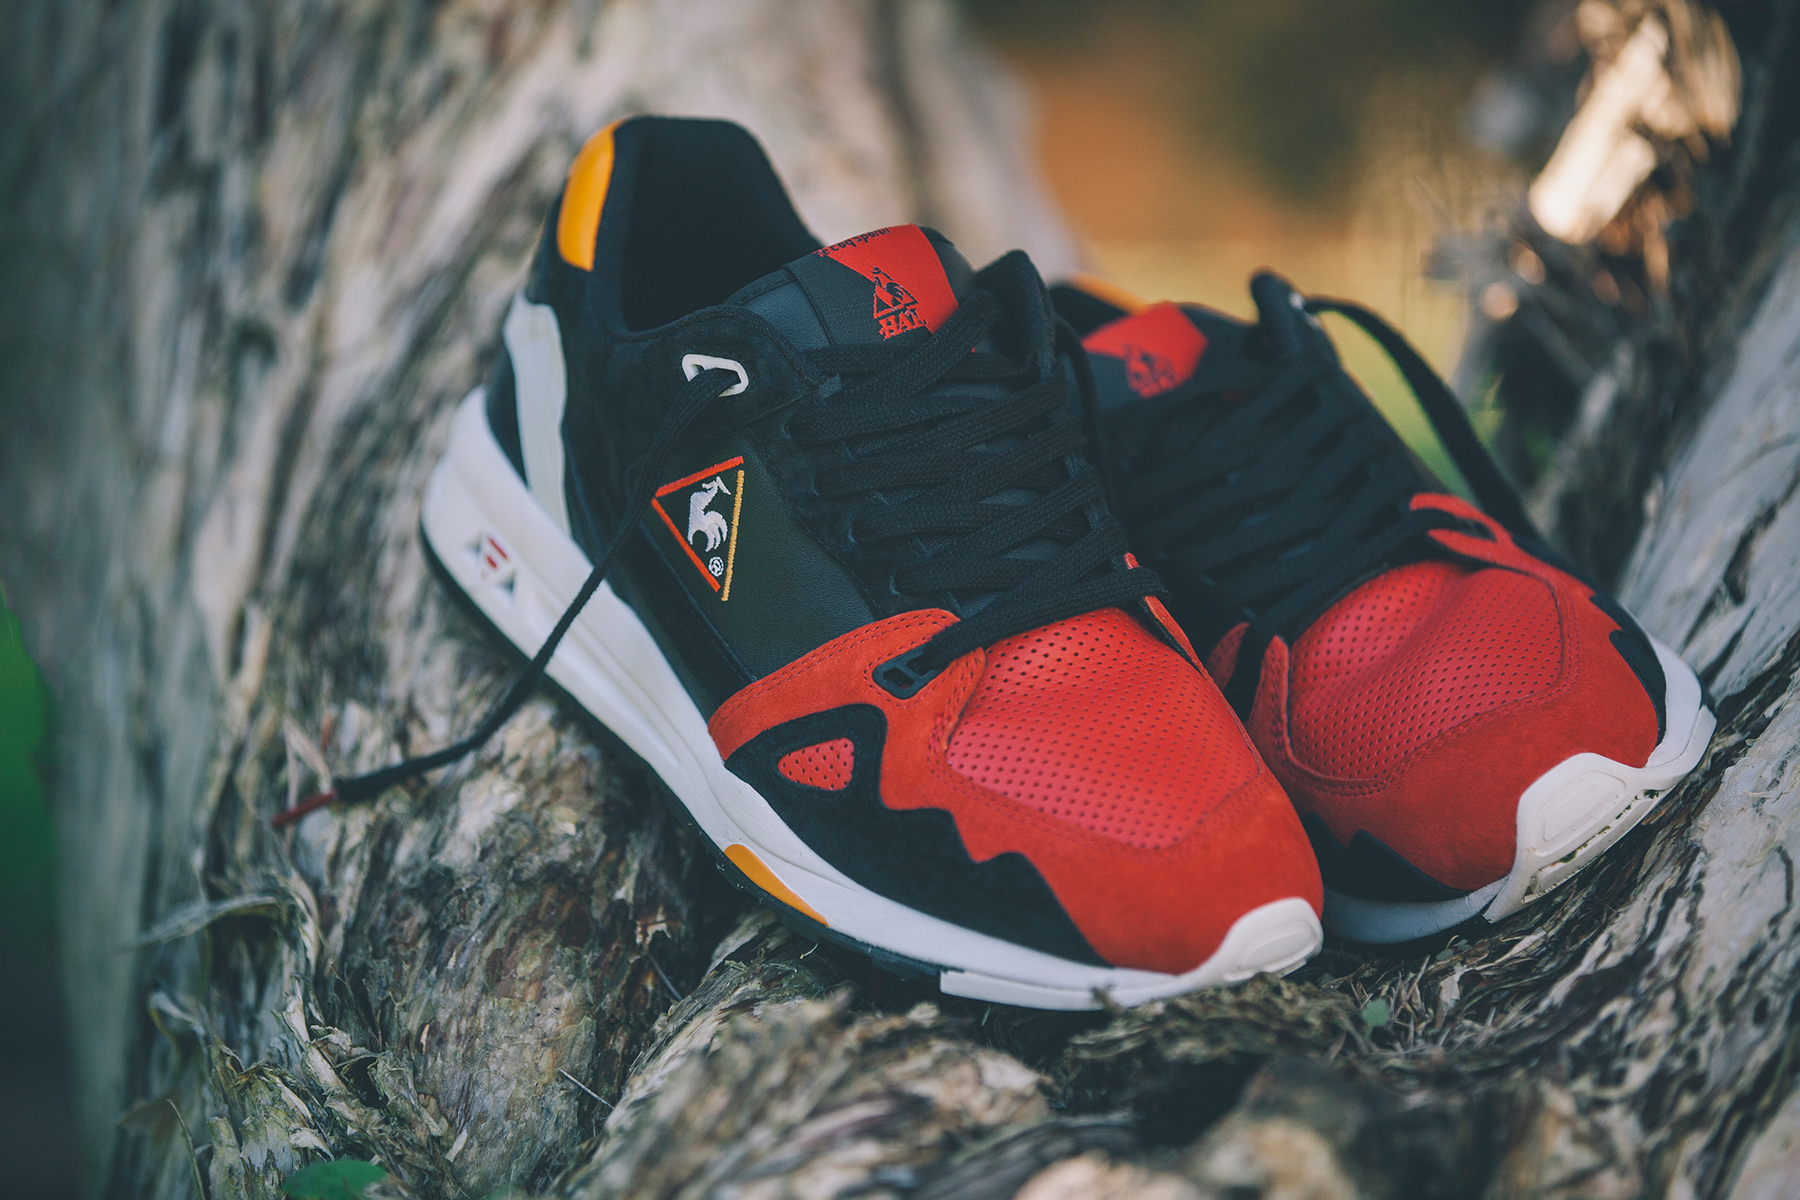 """Highs and Lows x Le Coq Sportif R1000 """"Swans"""" Pack"""